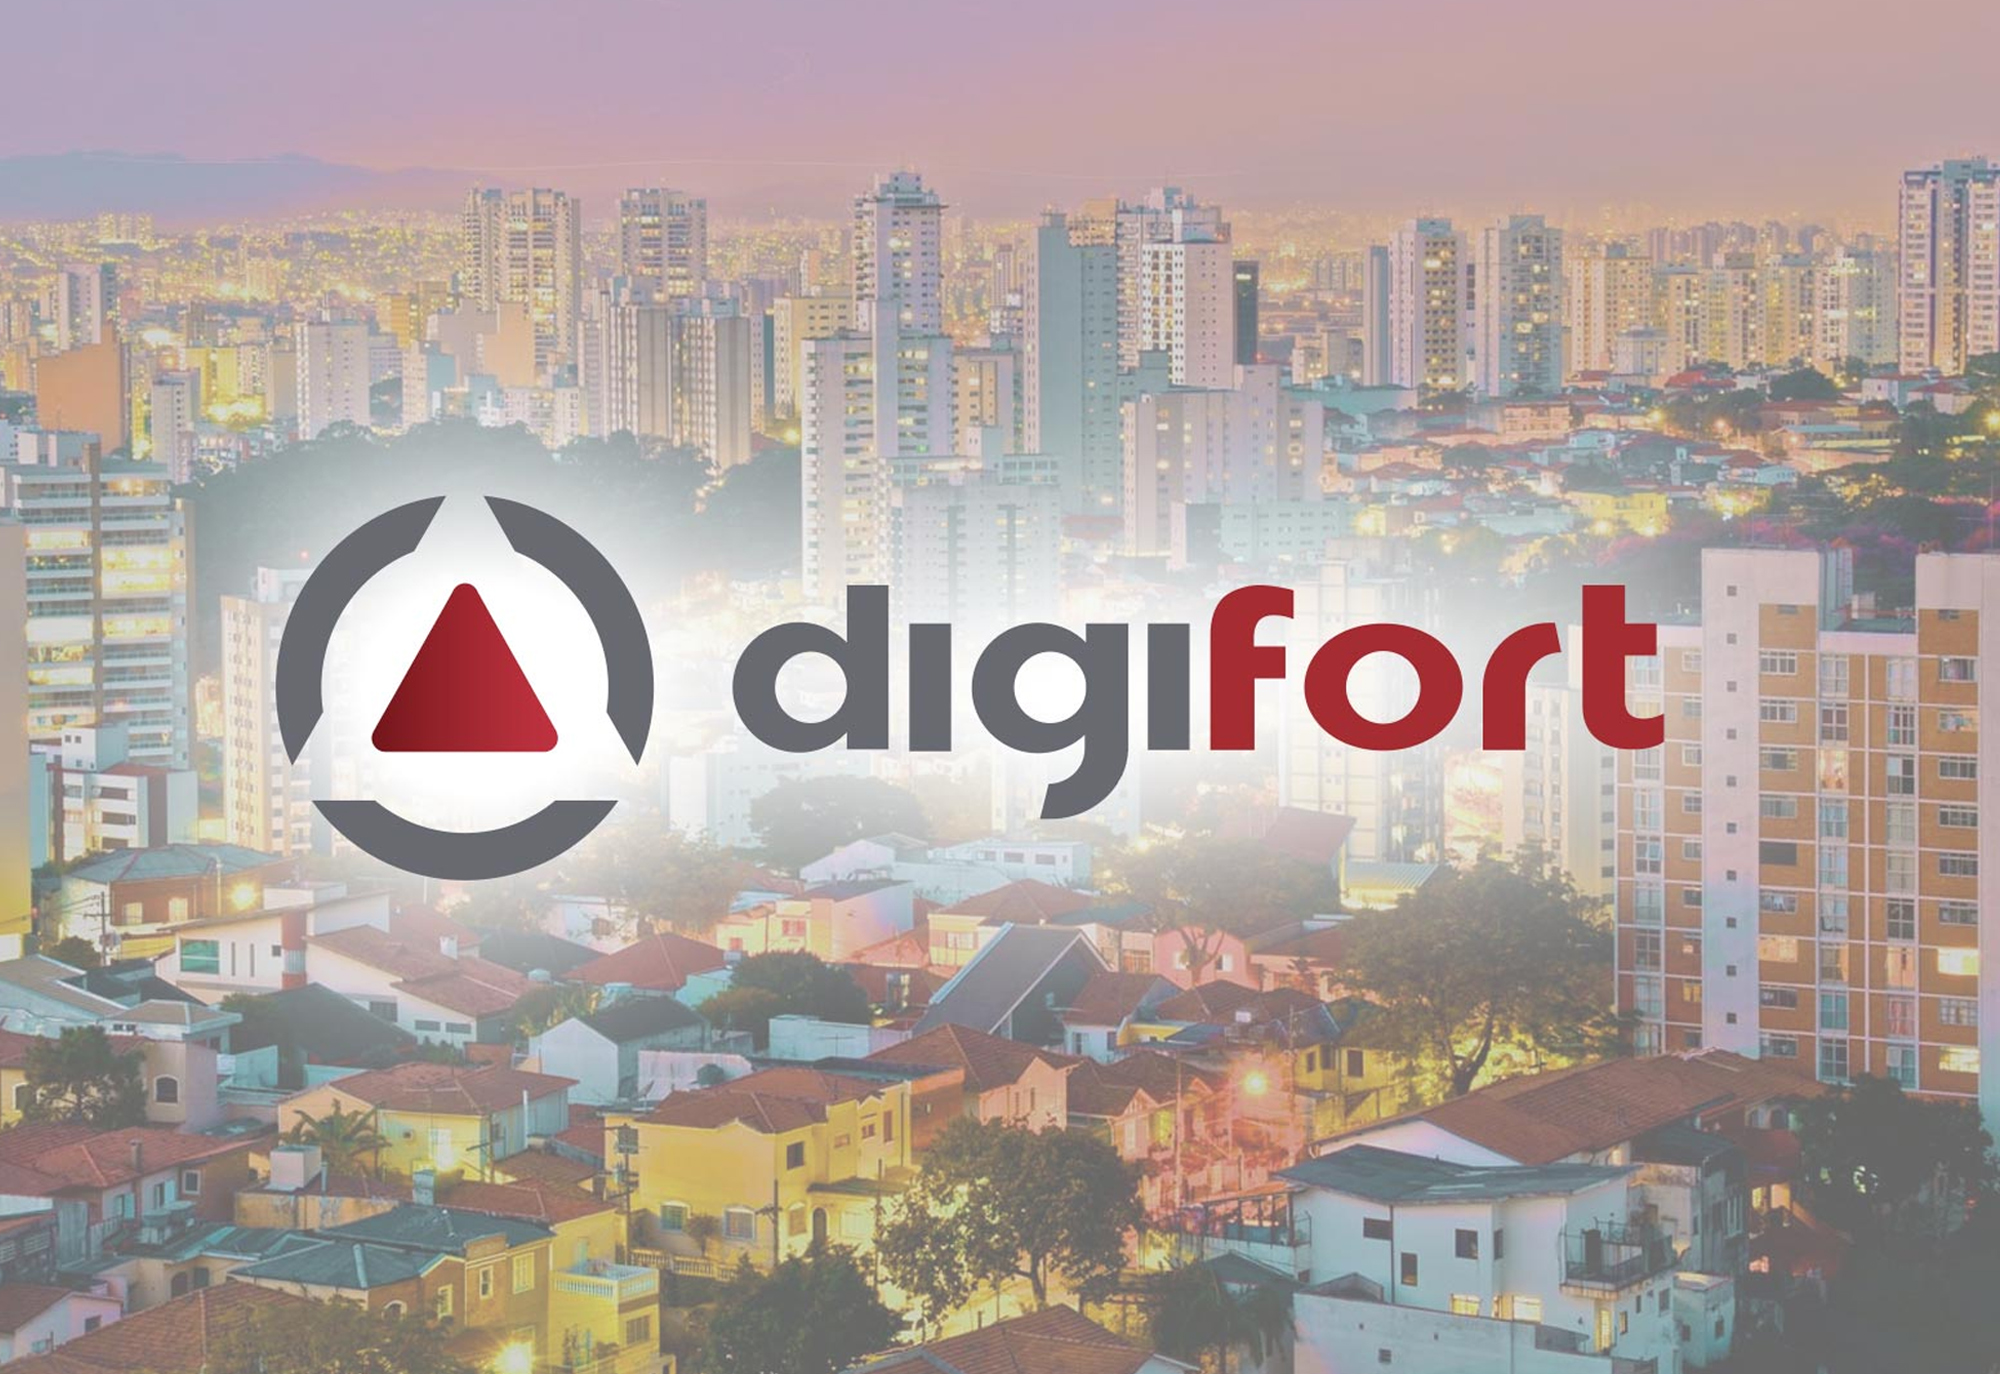 Rekor Selects Digifort as Premier Reseller of Vehicle Recognition Solutions in Brazil, Latin America, the Pacific Rim and the Middle East